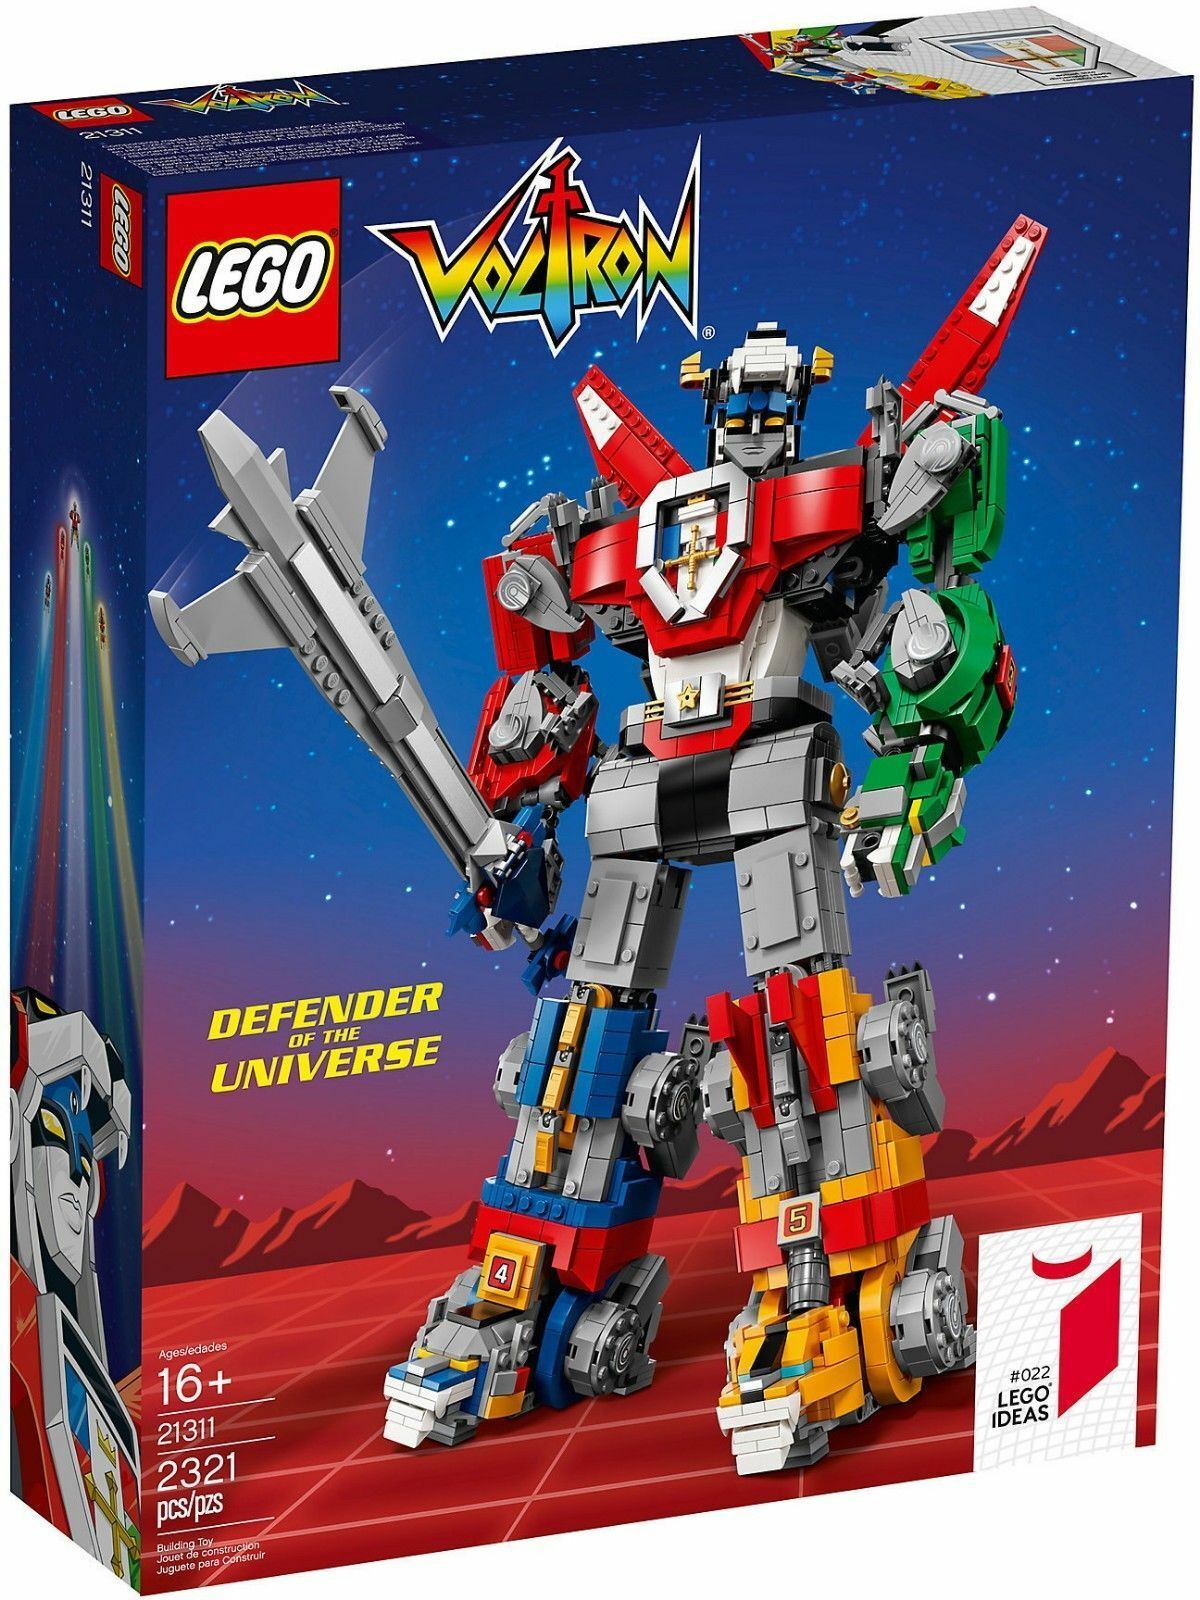 Lego Ideas  22, 21311,    Voltron, Defender of the Universe, New f17631